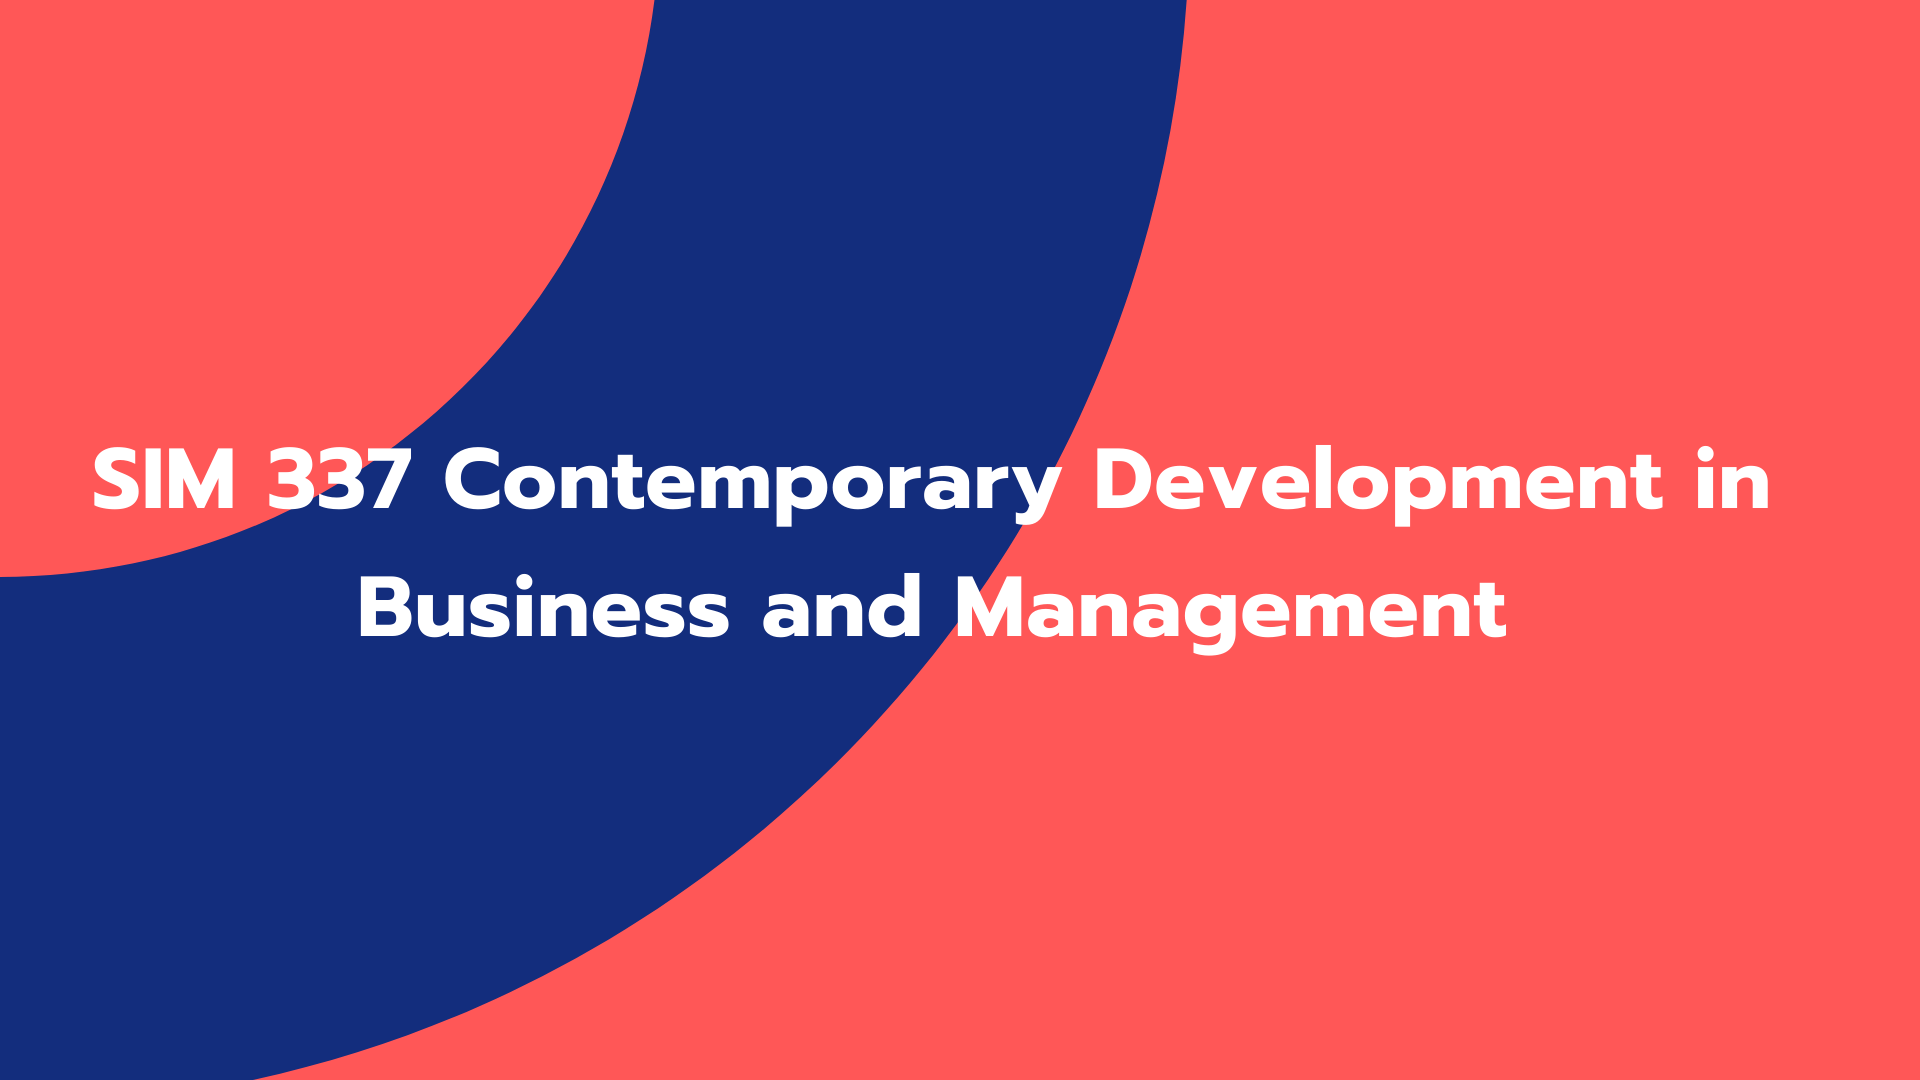 SIM 337 Contemporary Development in Business and Management